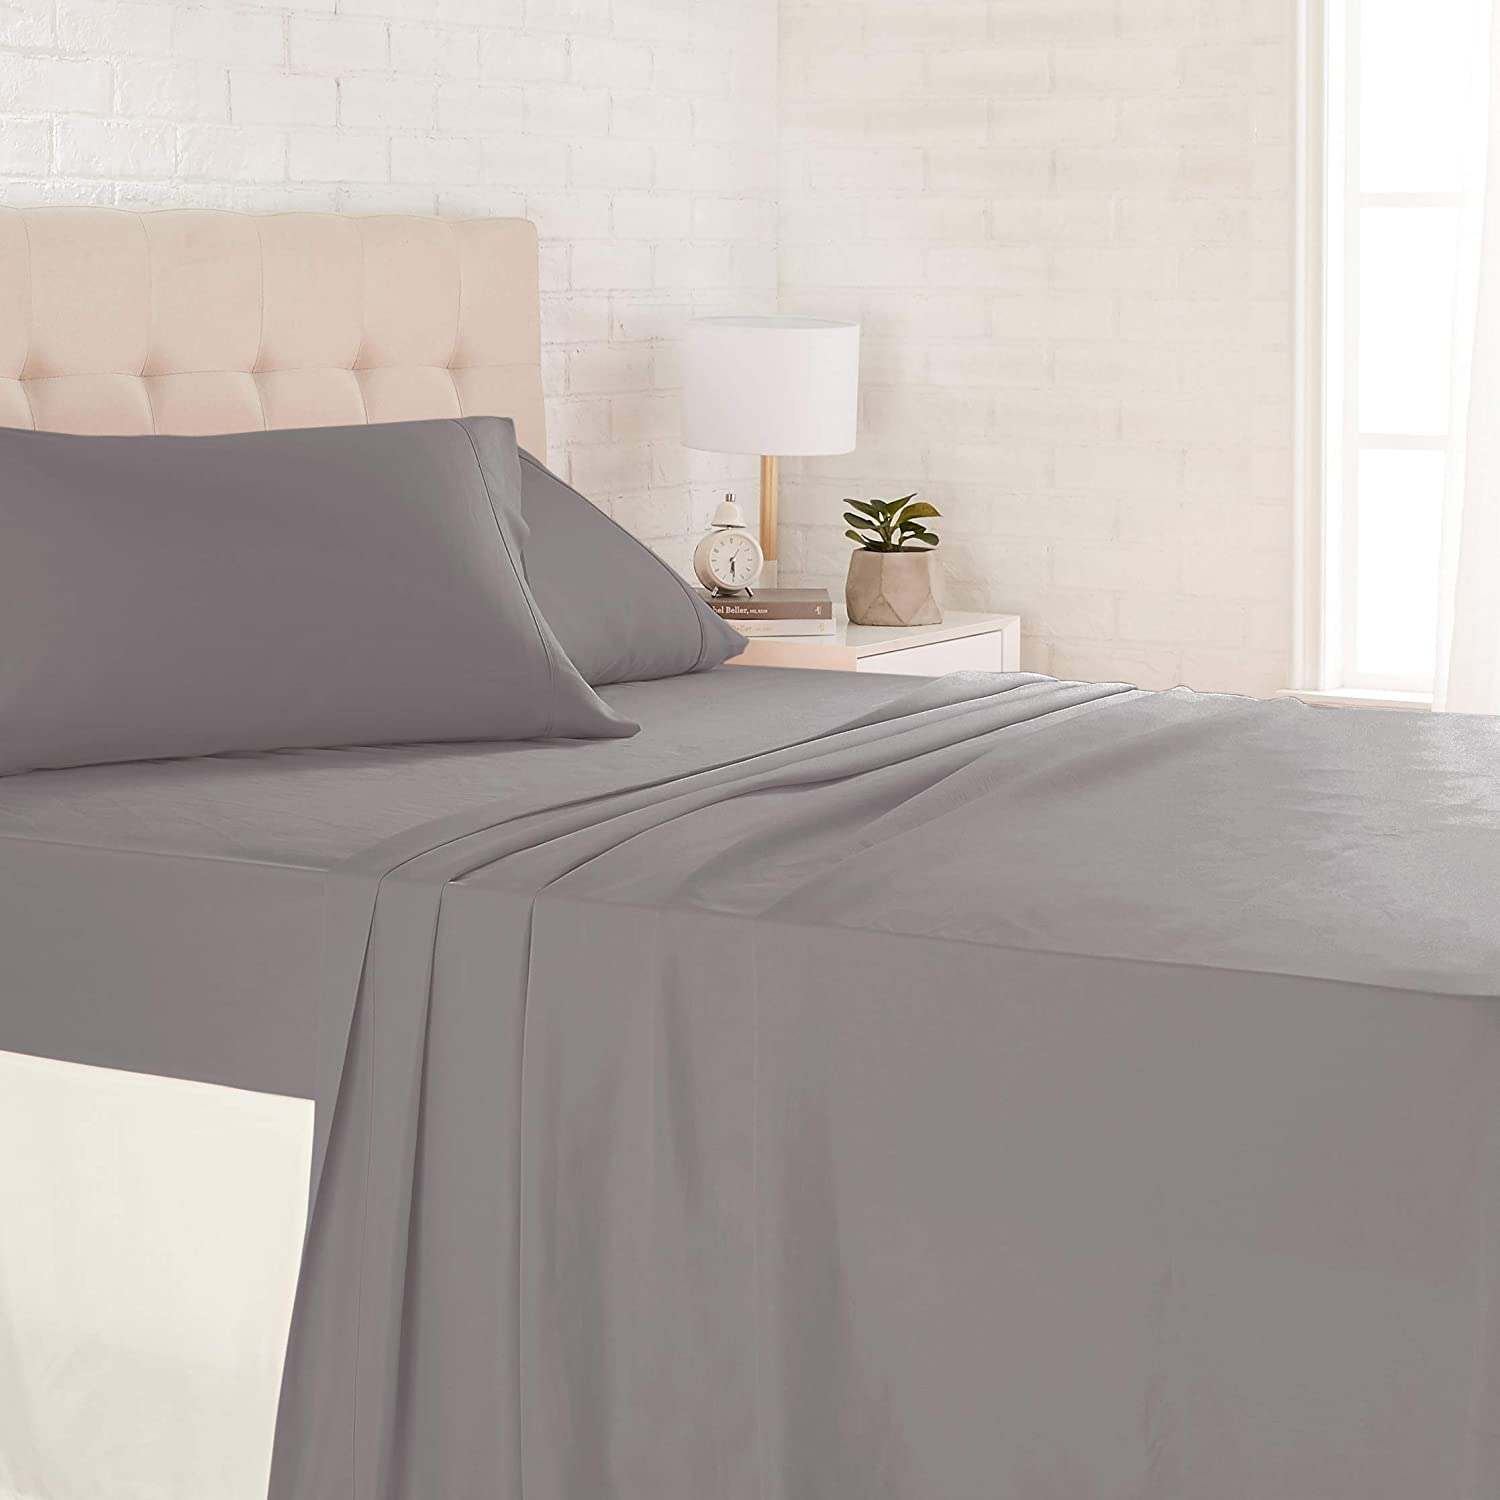 AmazonBasics Light-Weight Microfiber Sheet Set - Queen